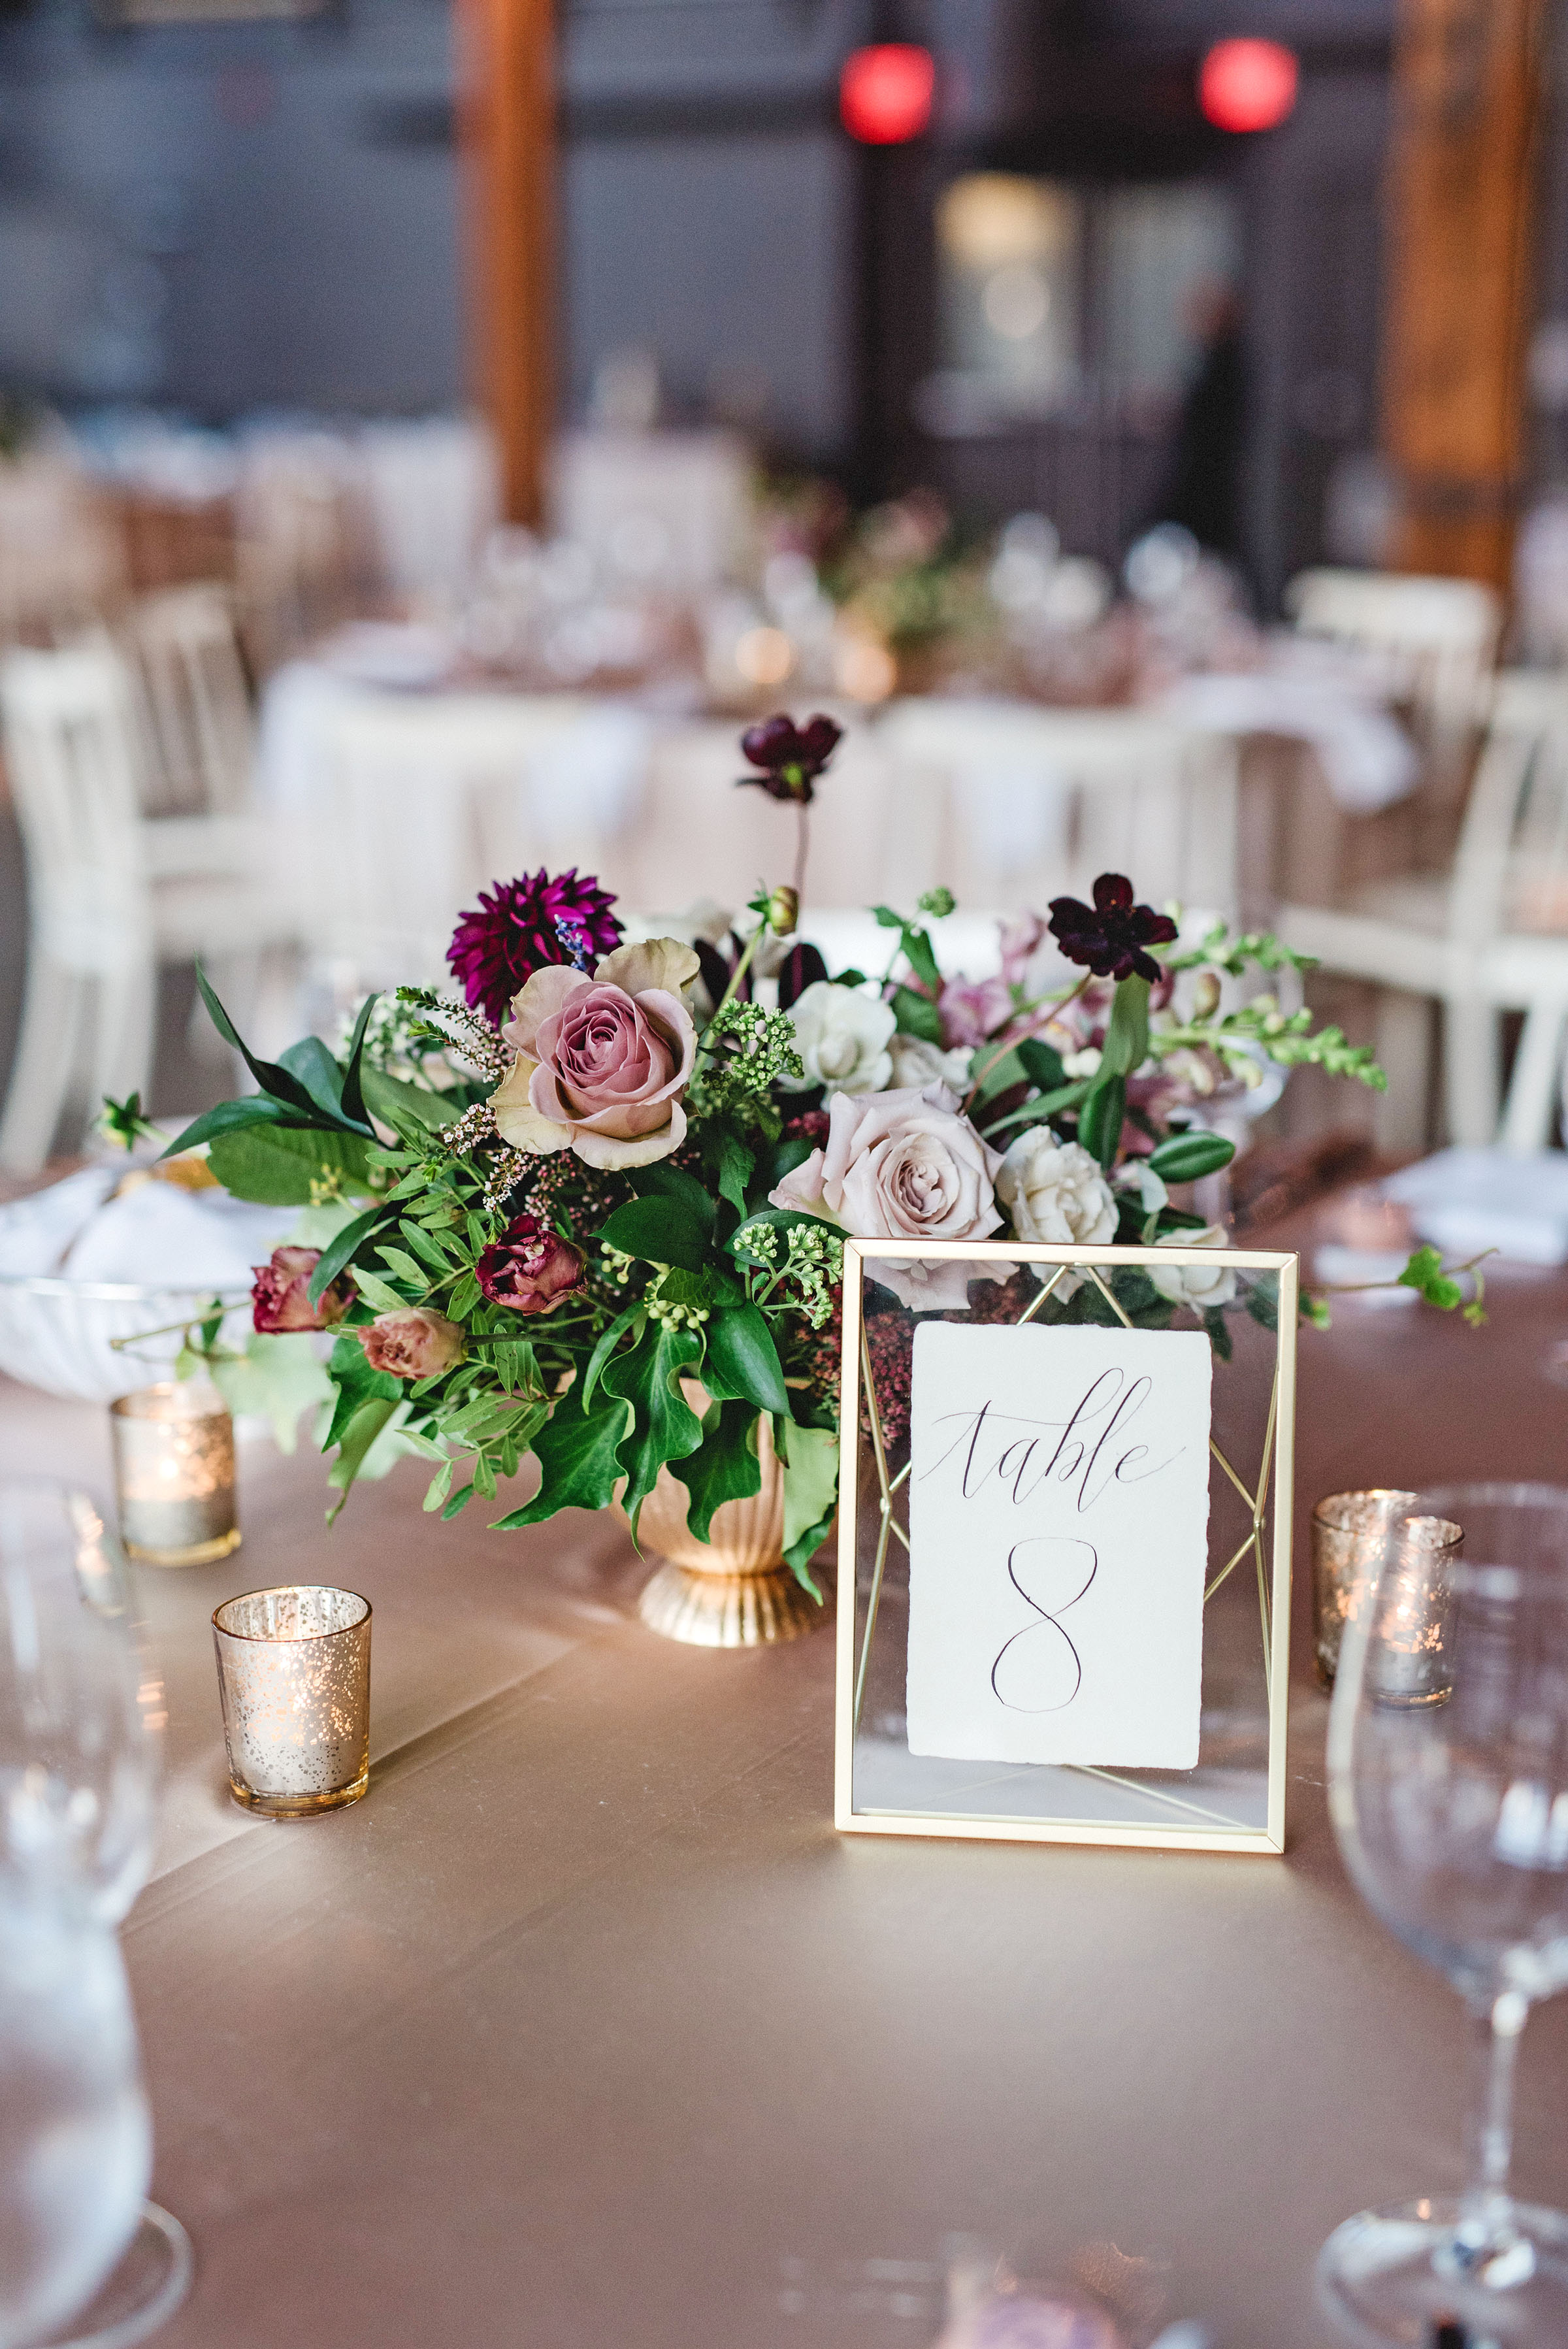 daniela andrei wedding reception centerpieces